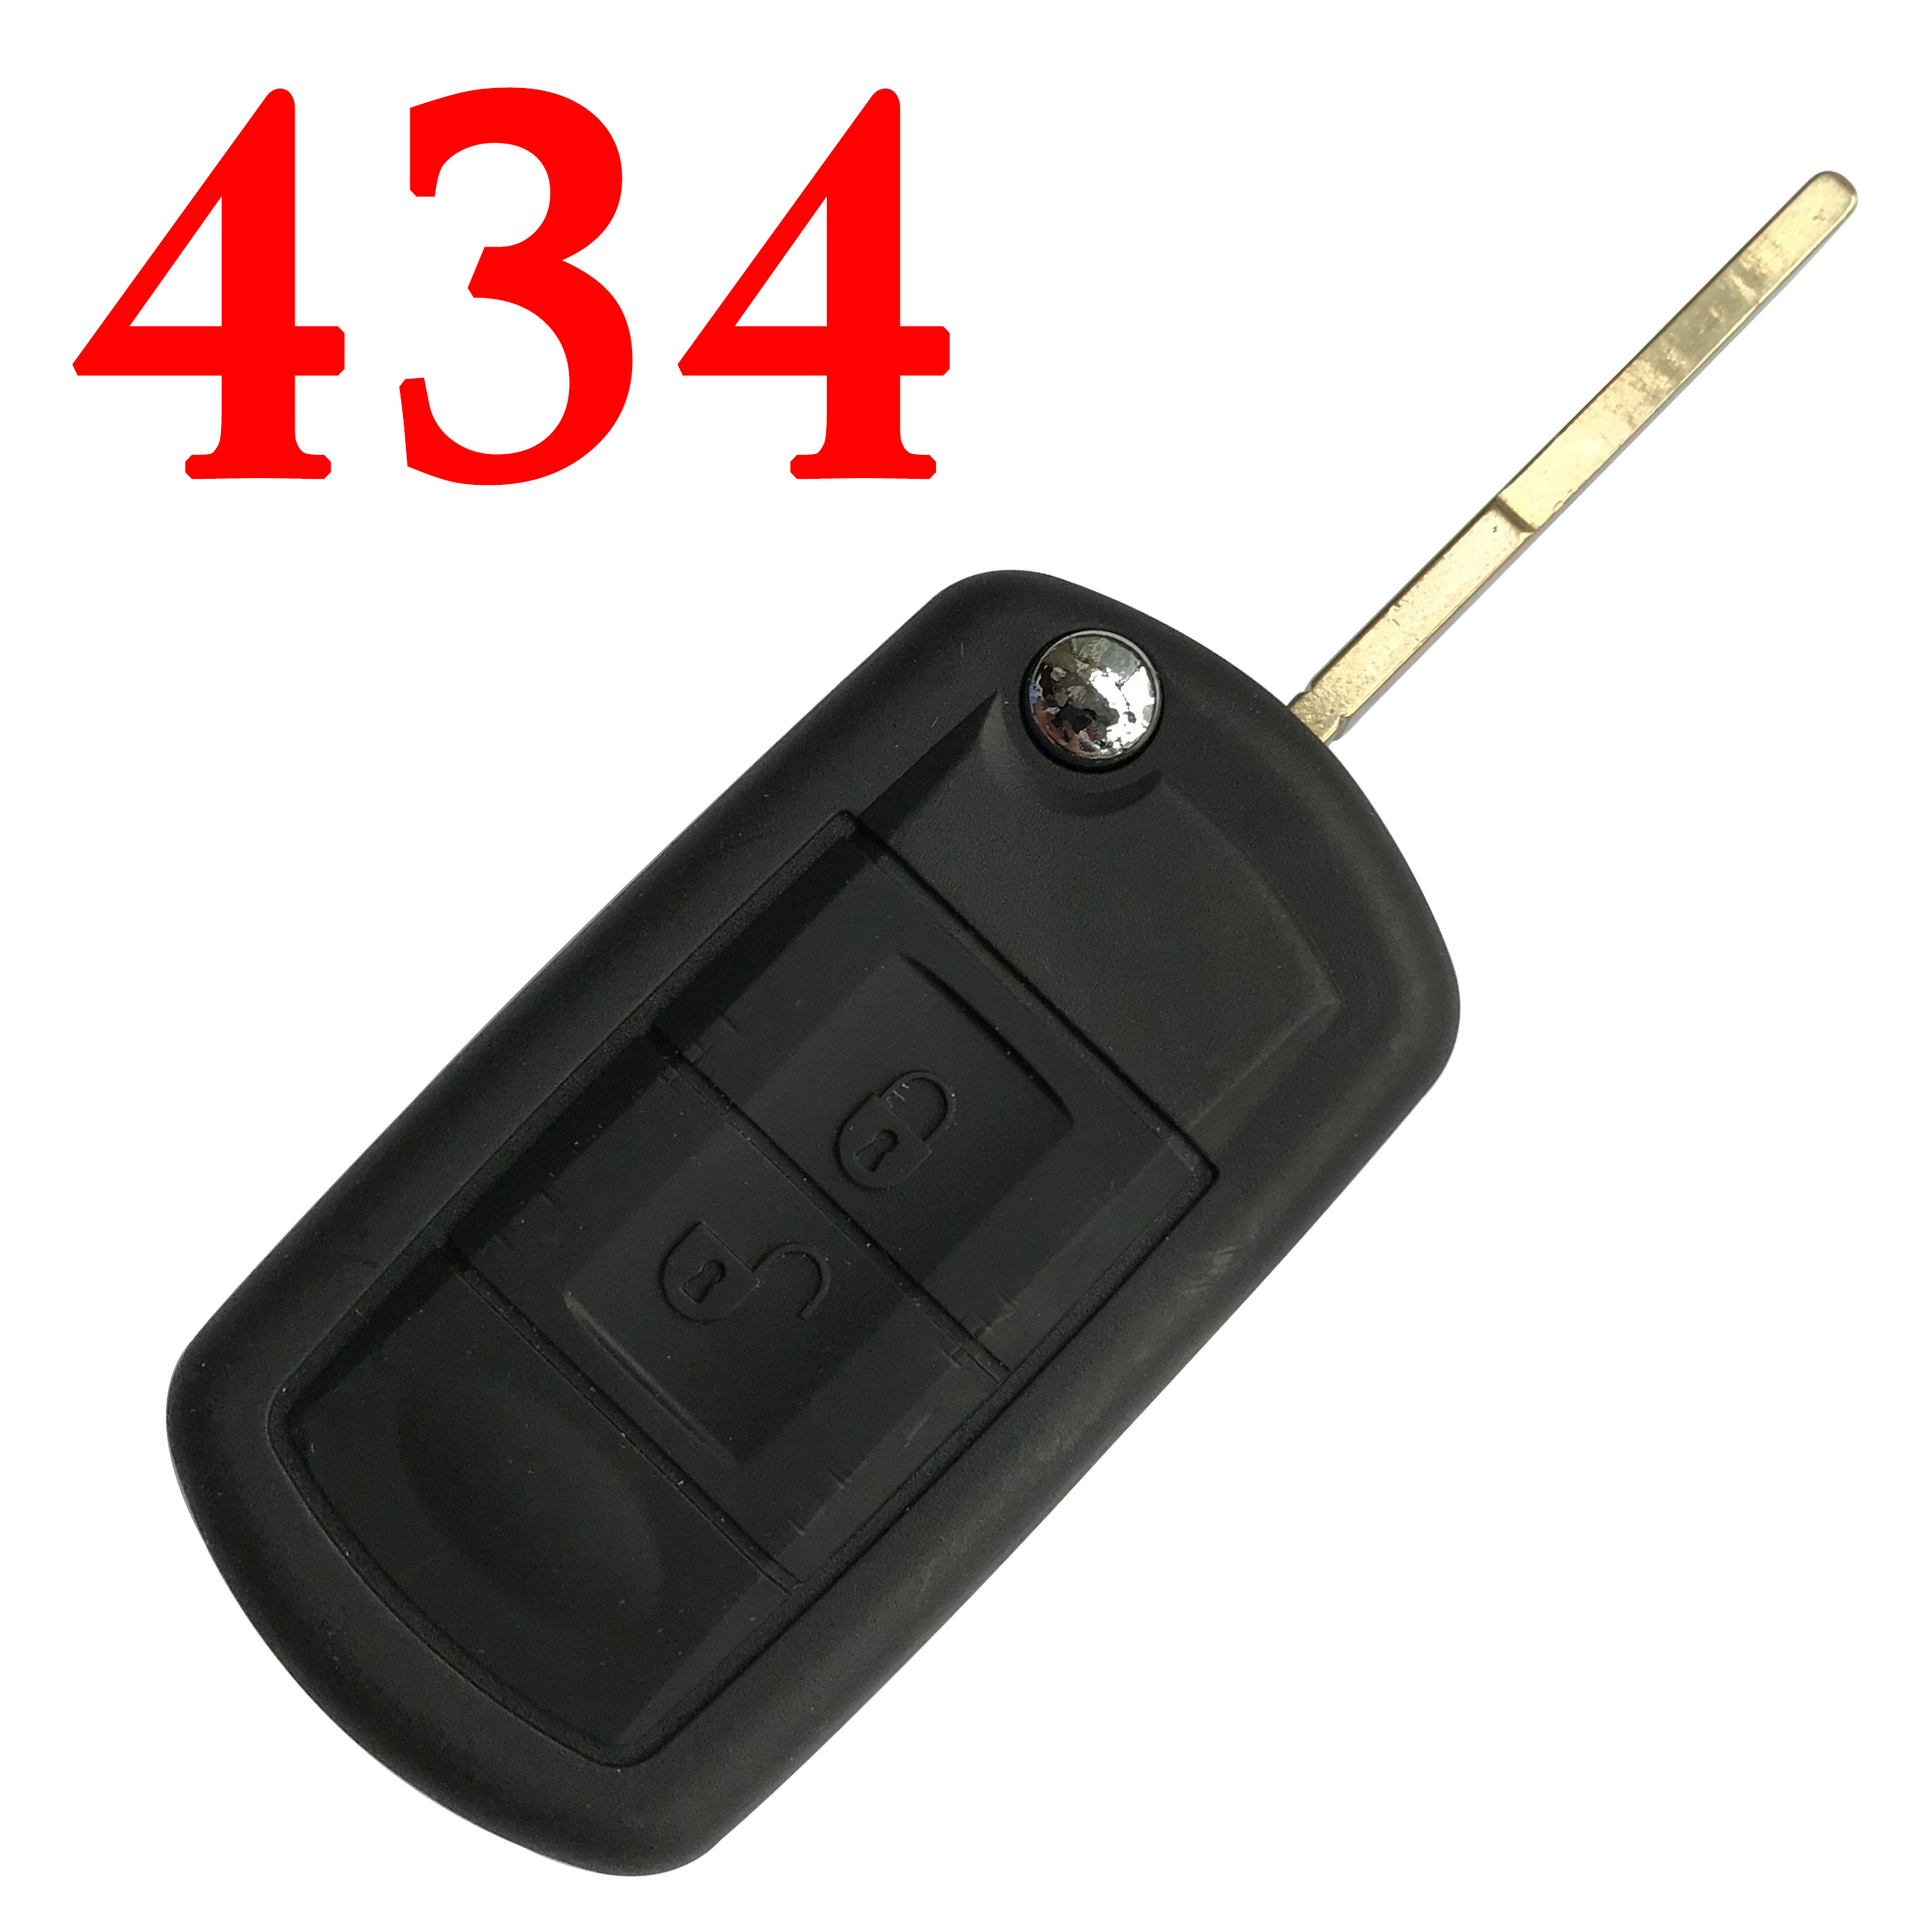 3 Buttons 434 Mhz Flip Remote Key for Land Rover Sport Discovery Vogue